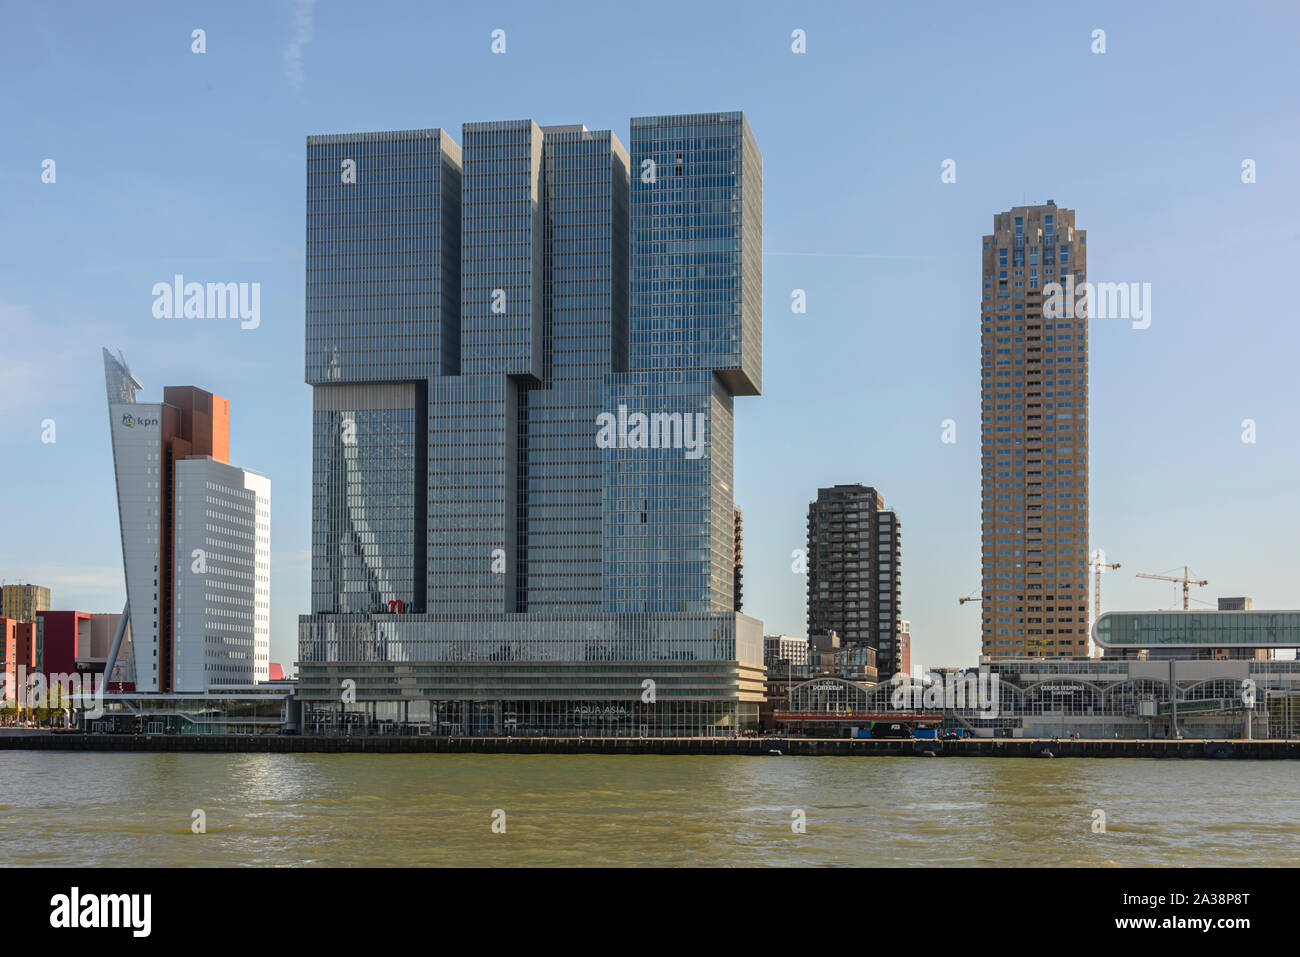 Modern office buildings on the Rechtbank, Rotterdam, Netherlands Stock Photo